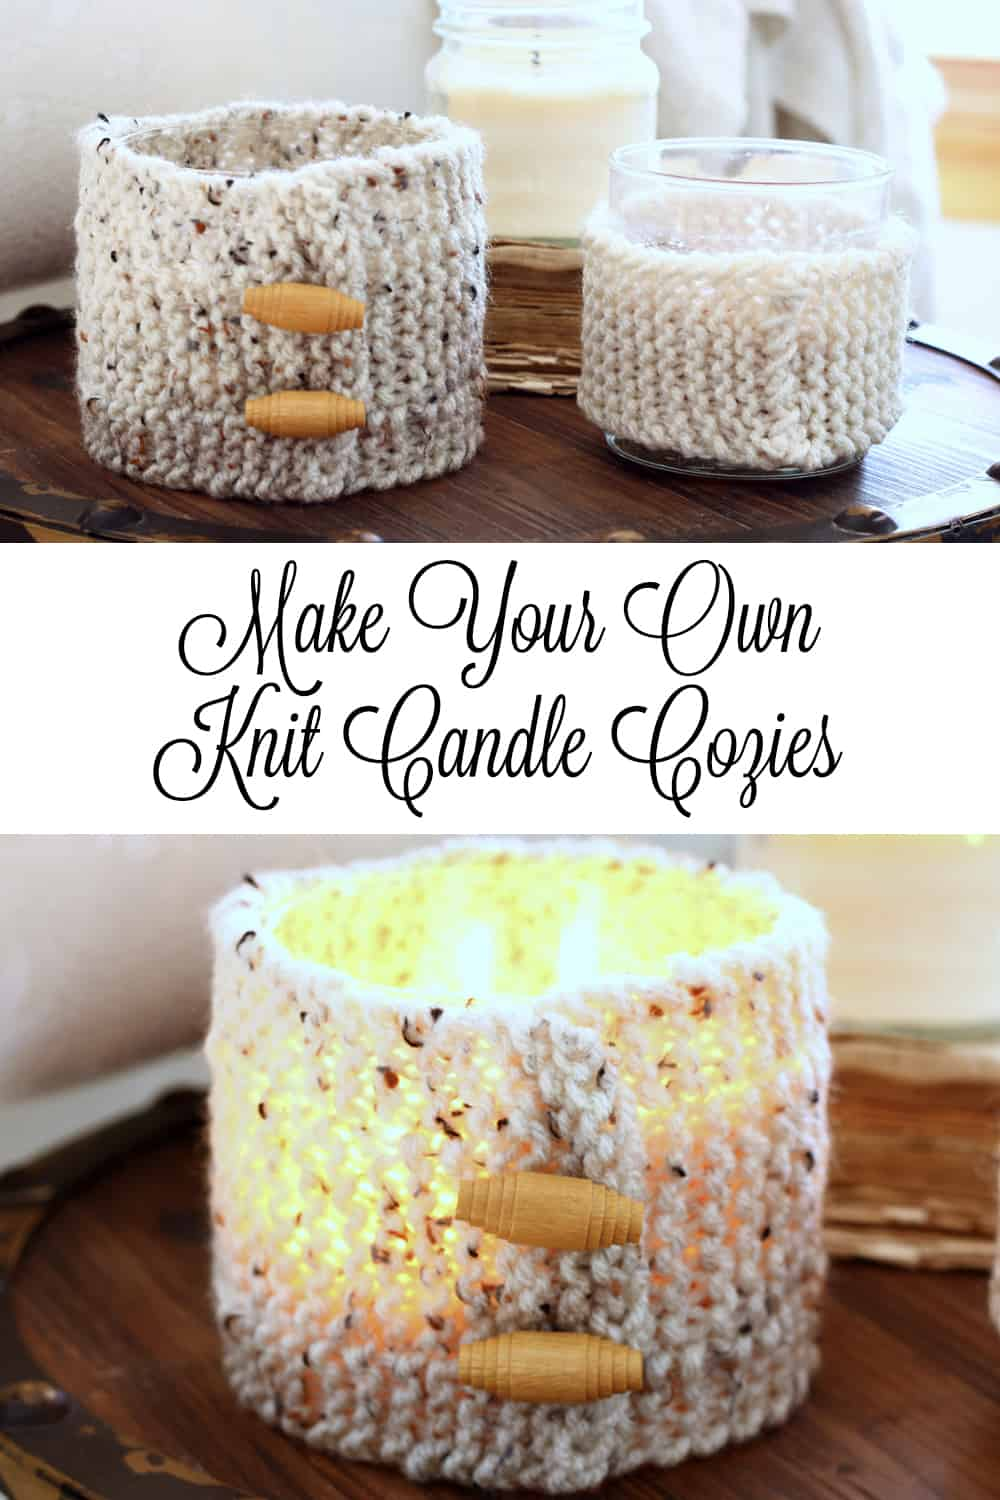 Make your own knit candle cozies